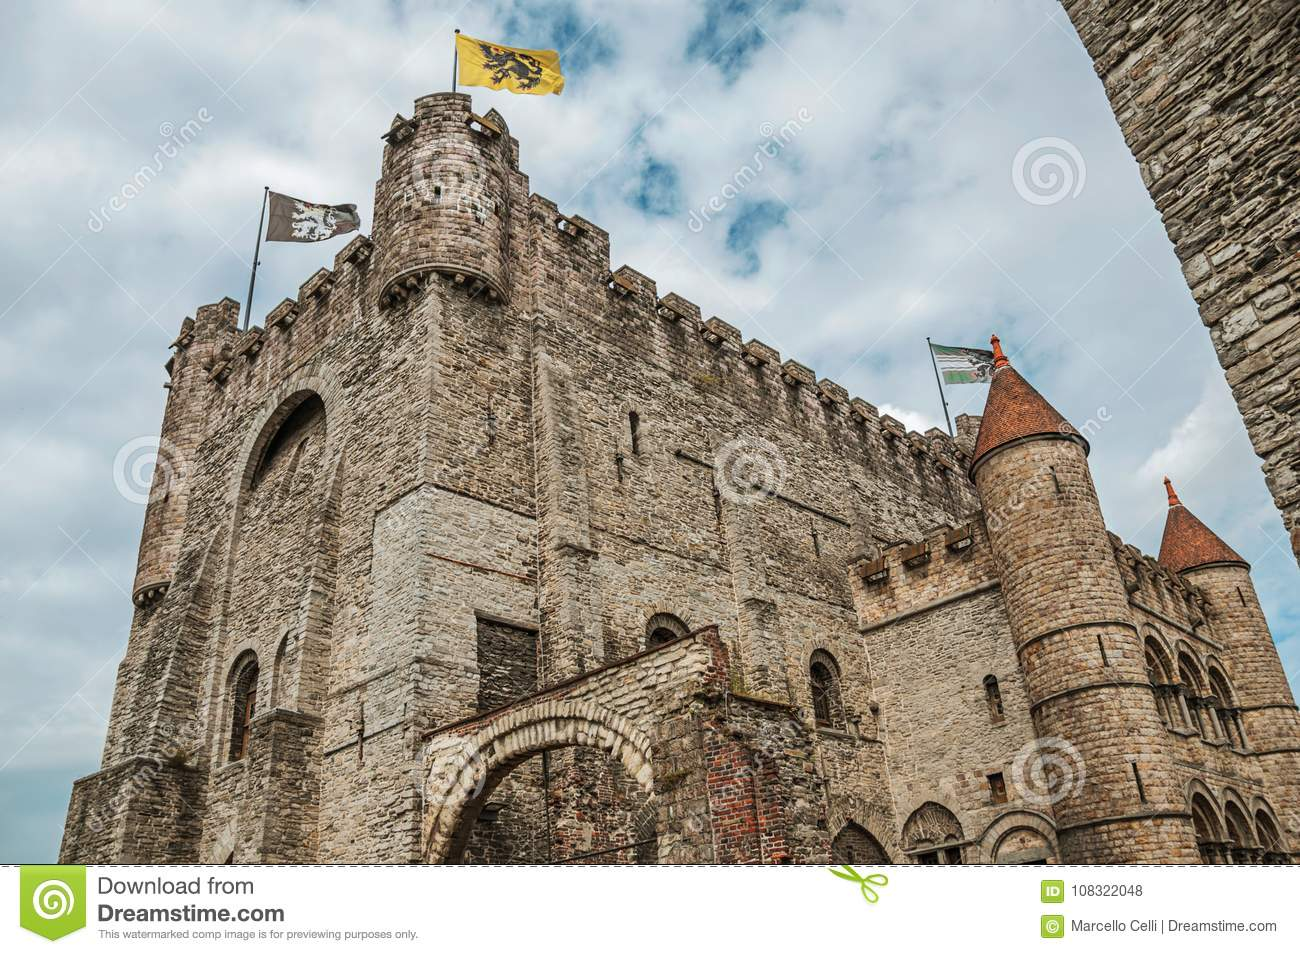 Stone watch-tower, walls and flags inside the Gravensteen Castle at Ghent.